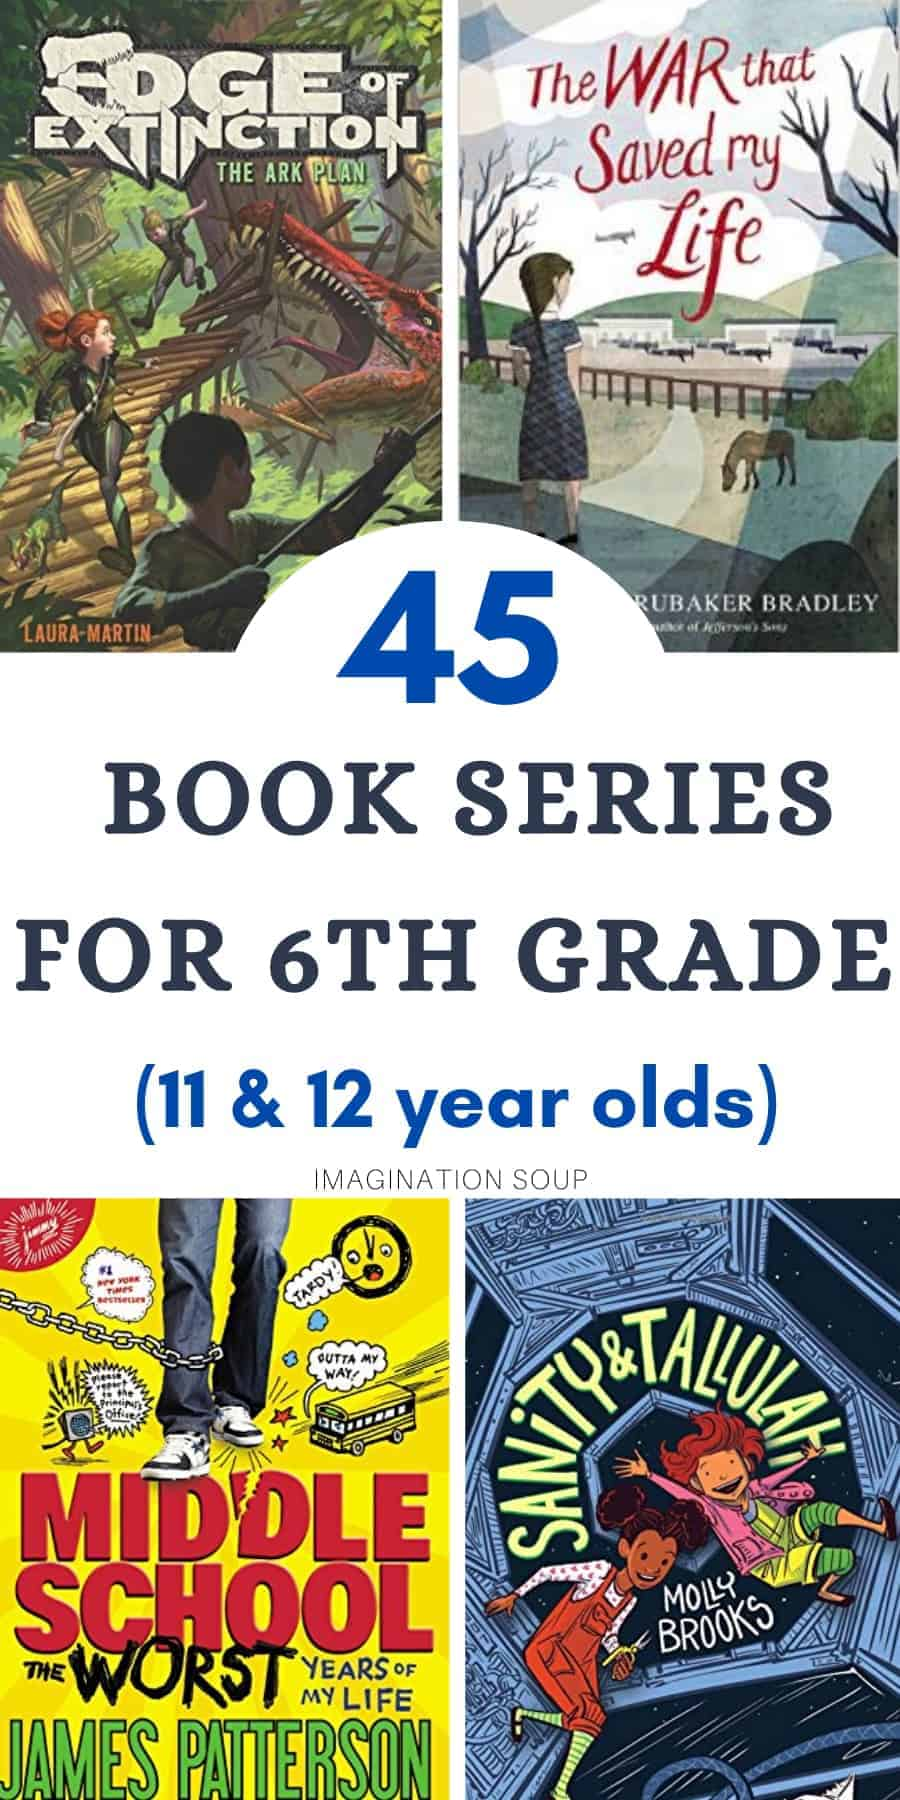 the best list of book series for 6th graders (ages 11 and 12)